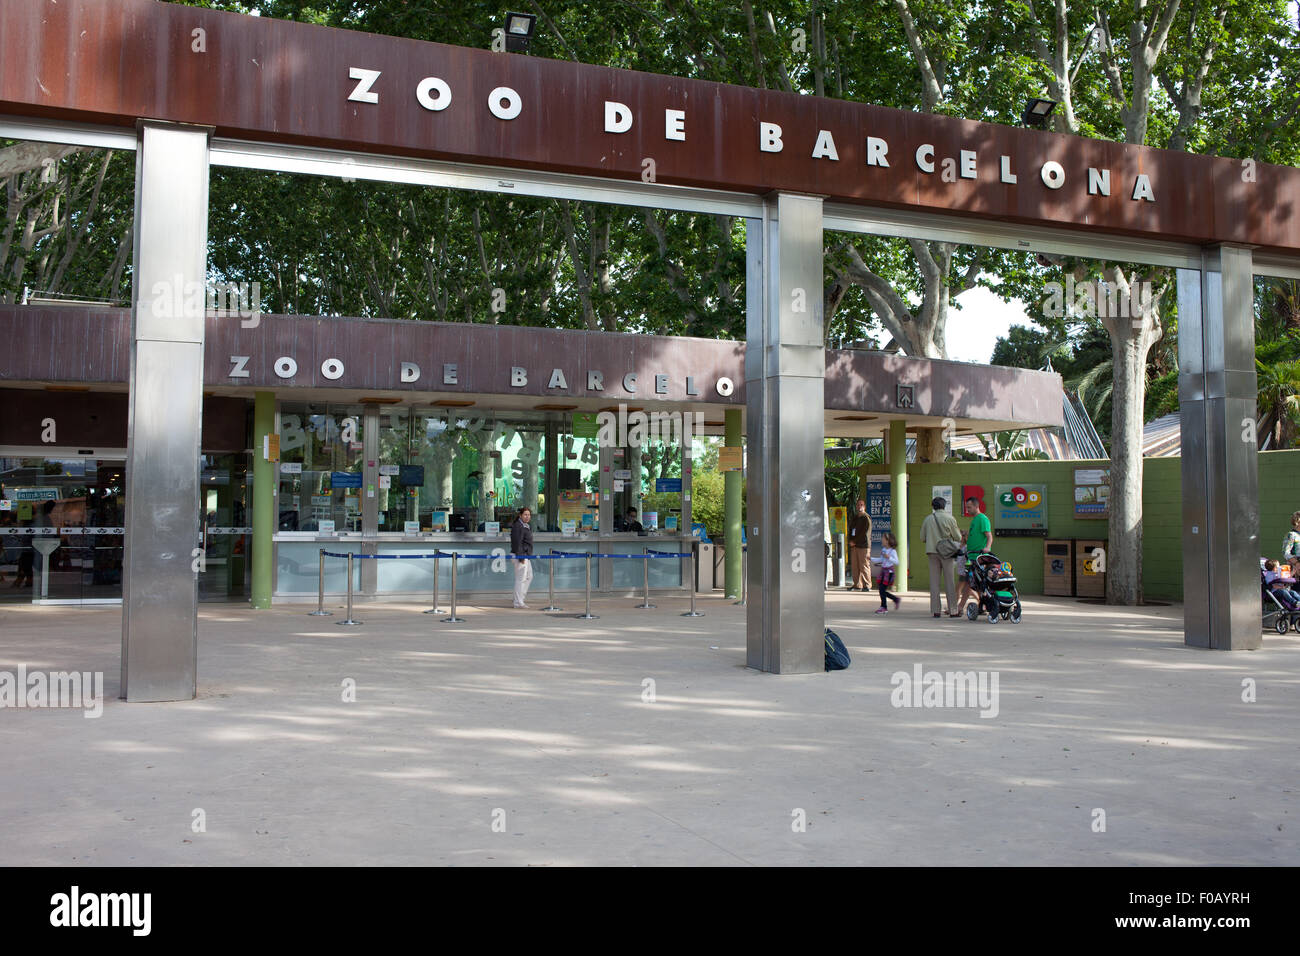 Barcelona Zoo In Catalonia Spain Ticket Office And Entrance Stock Photo Alamy